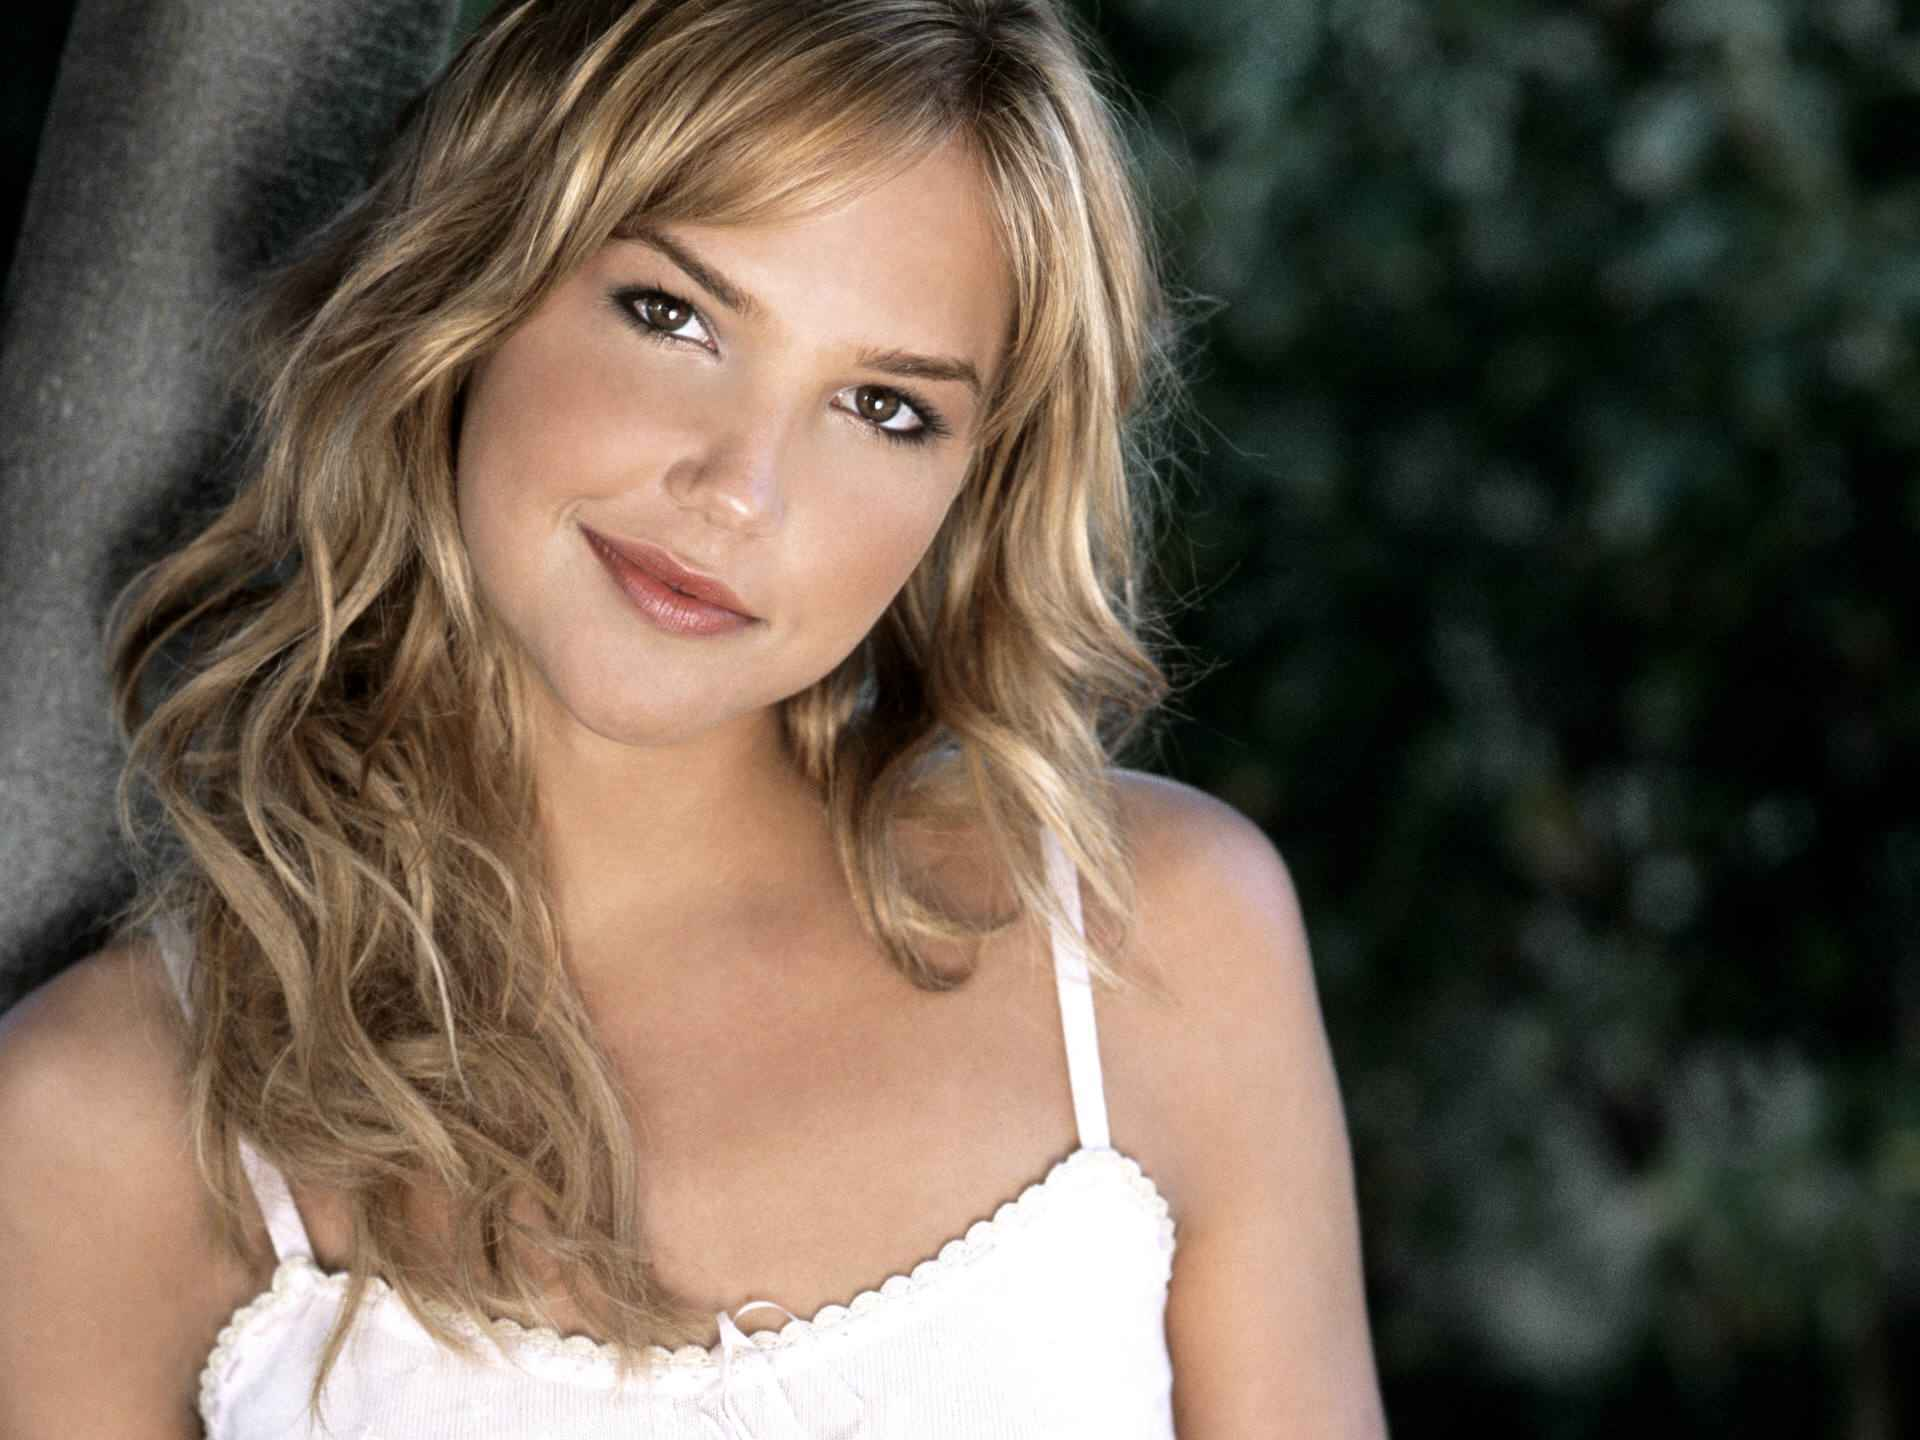 Pictures Of Arielle Kebbel